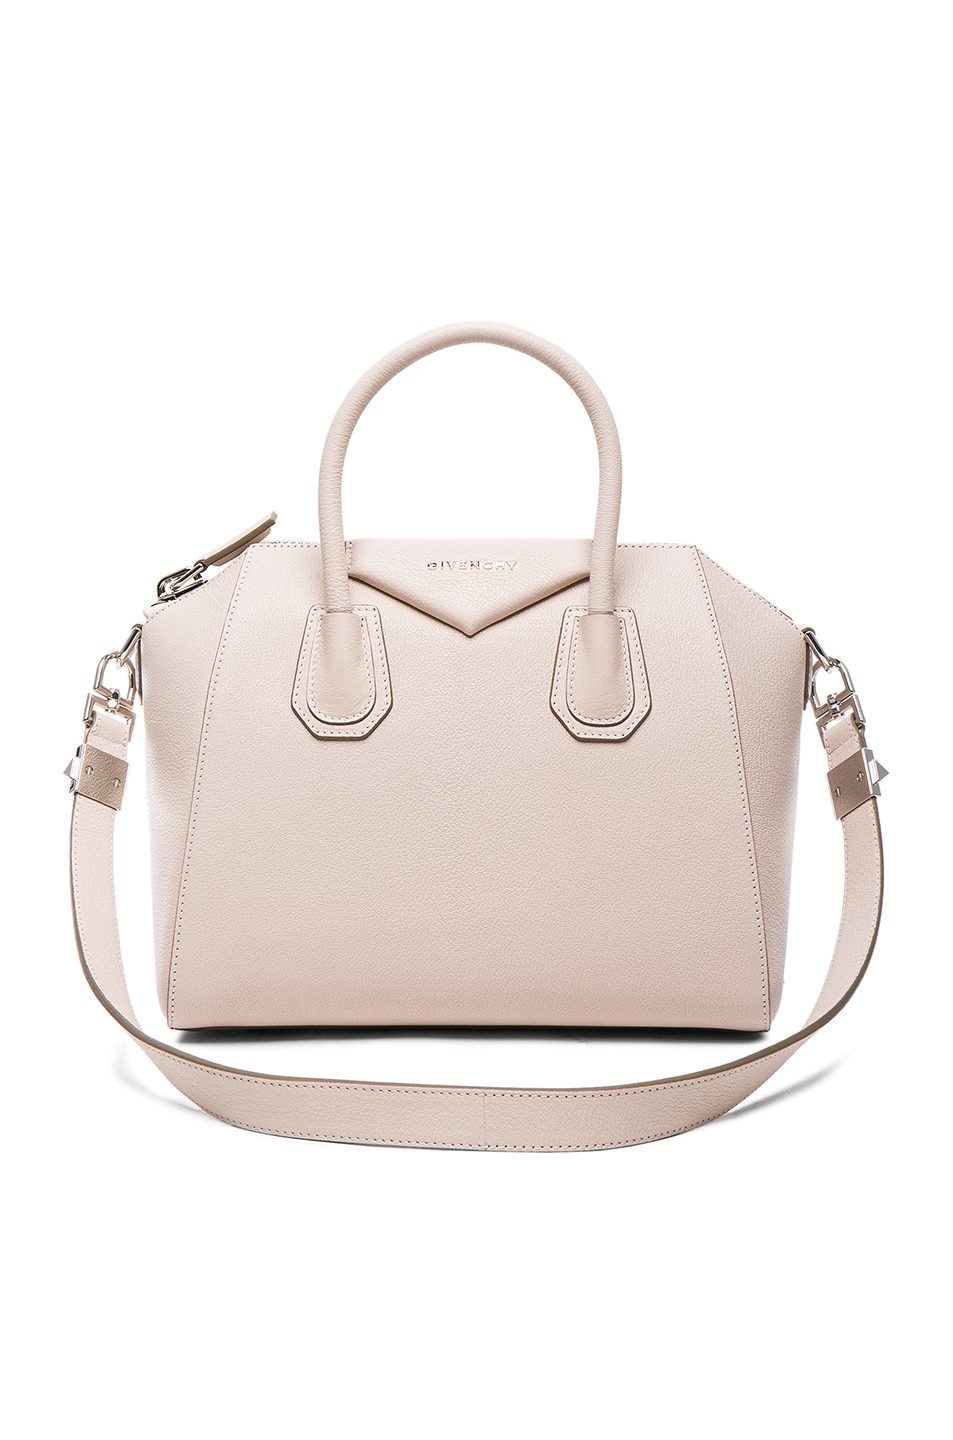 Image 1 of Givenchy Small Antigona in Nude Pink